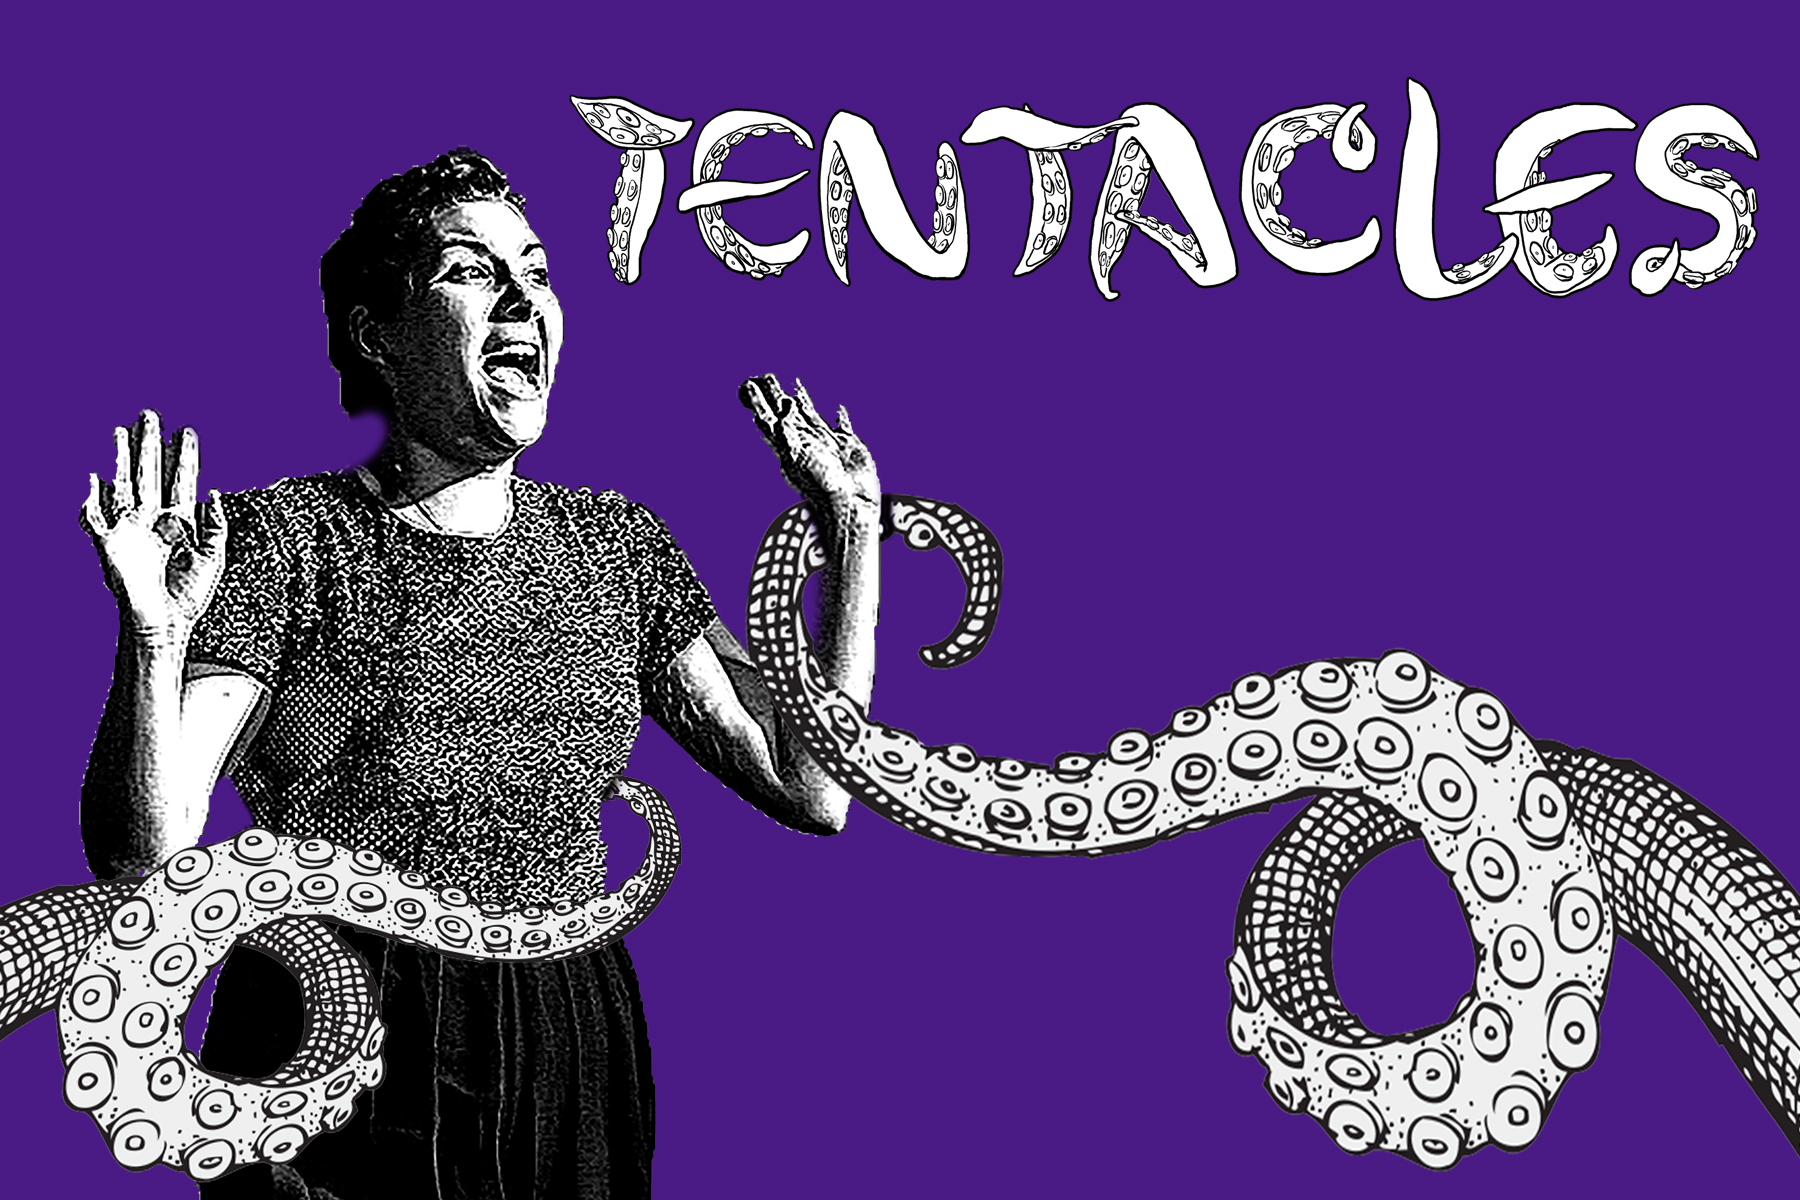 TENTACLES - TENTACLES - developed from 2017-2019. Directed by Rebecca Cunningham, Written/Performed by Tessa Flannery.Developed at the PIT and Magnet Theater. Festivals: FRIGID 2018, Estrogenius 2018, Pittsburgh Fringe 2018, APAP 2019. Awards: Best Multimedia, Estrogenius Award, Staff Favorite (FRIGID NY), Best Writing (Pittsburgh Fringe).To inquire about touring, or to learn more, visit Tentacles The Show. Image text by Dennis Pacheco.